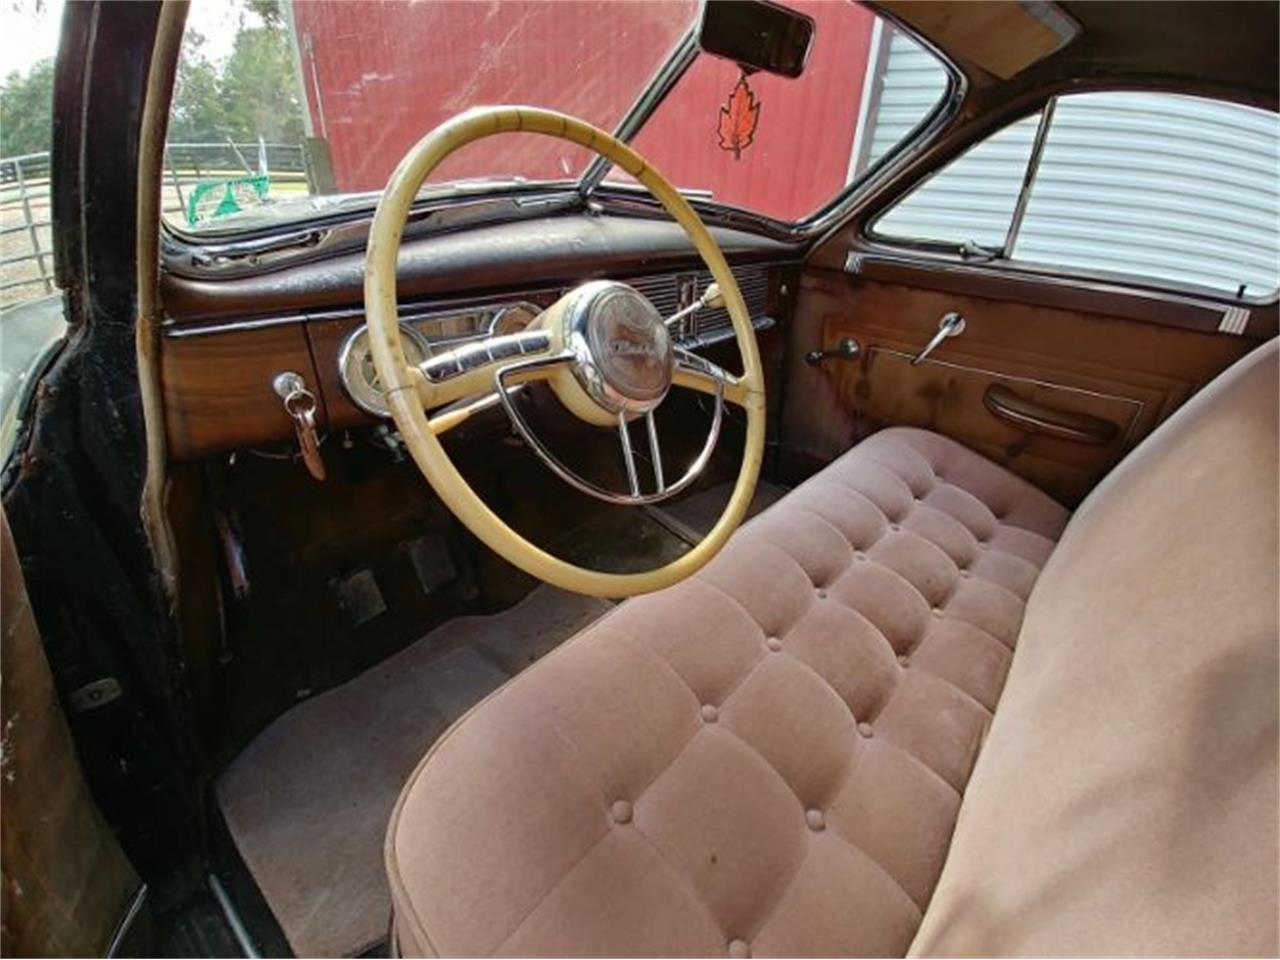 Large Picture of 1949 Packard Super Deluxe located in Michigan - $14,495.00 Offered by Classic Car Deals - P4BK